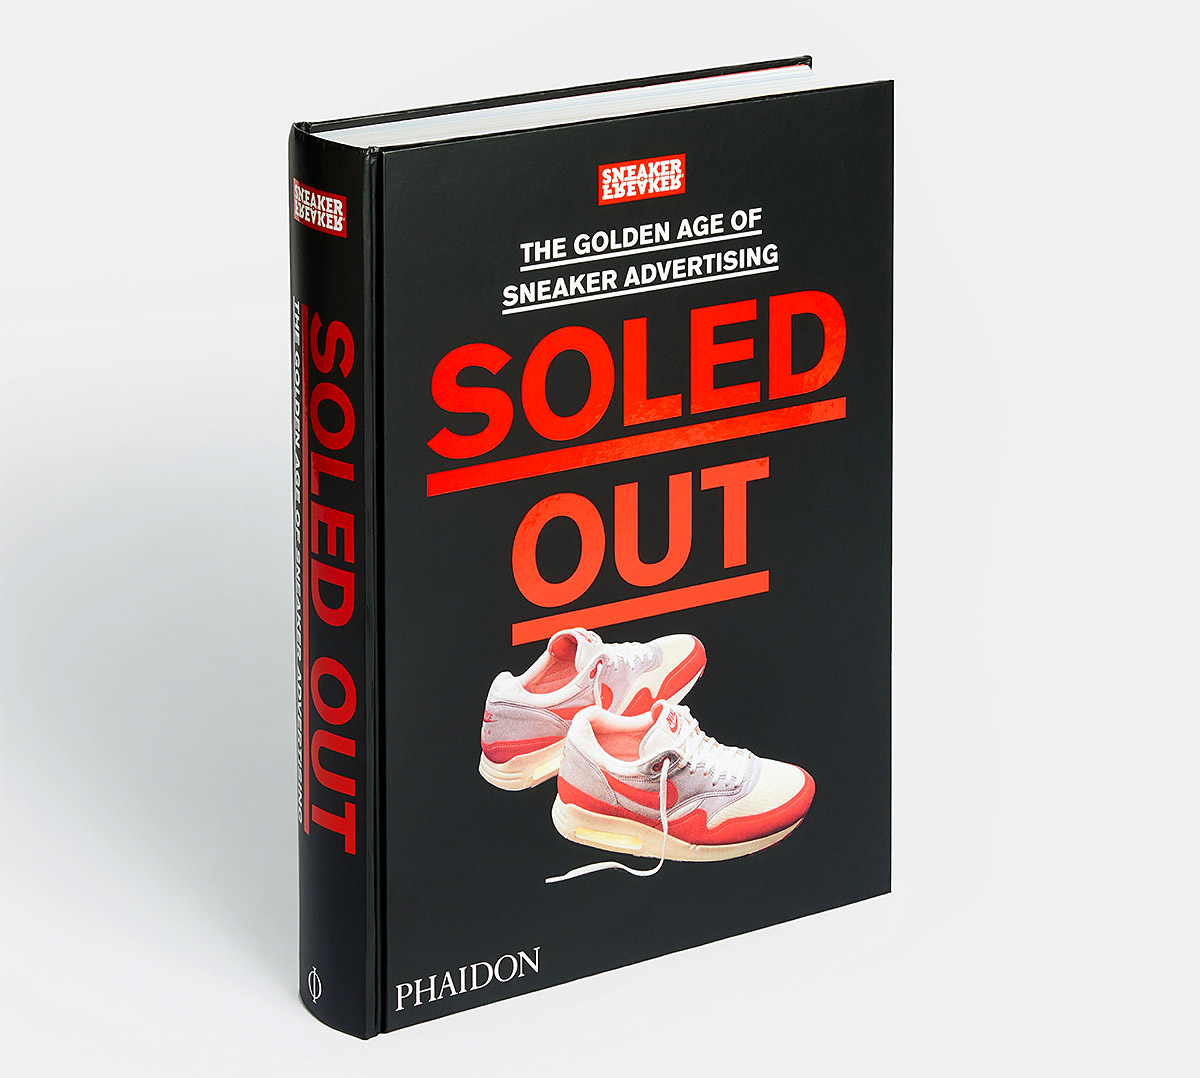 Soled Out: The Golden Age of Sneaker Advertising at werd.com